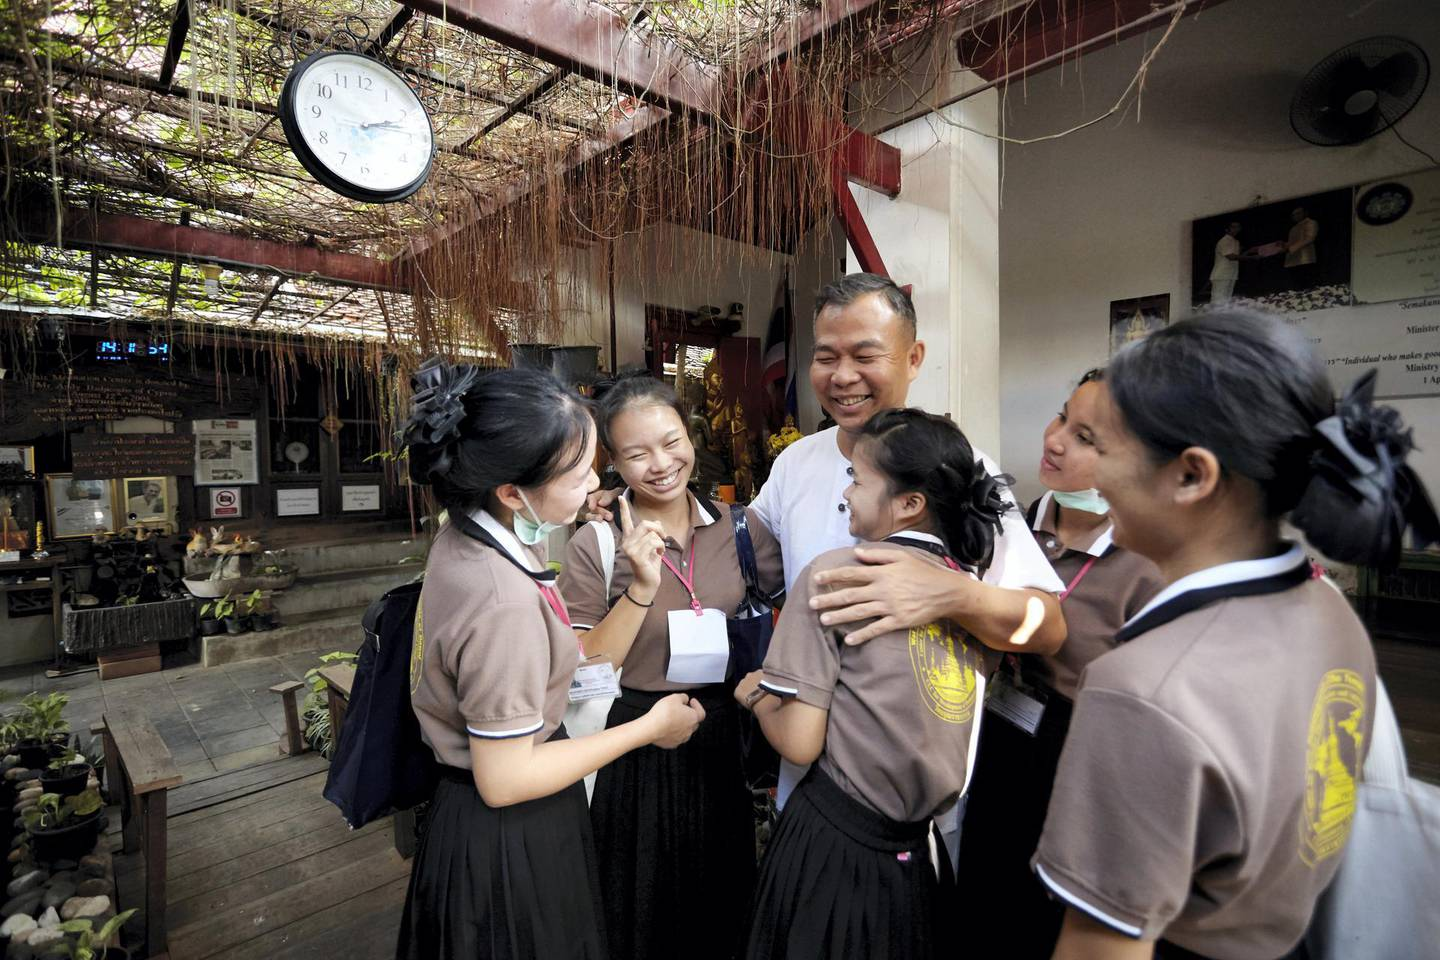 Bangkok-Thailand-CLC (Community Learning Center) Temple of Dawn- The students are comming to inform and say goodbye to Hartanto as they are going for the training at the hospital in the countryside for 3 weeks. Hartanto wishing them all the best. Sasamon Rattanalangkarn for The National